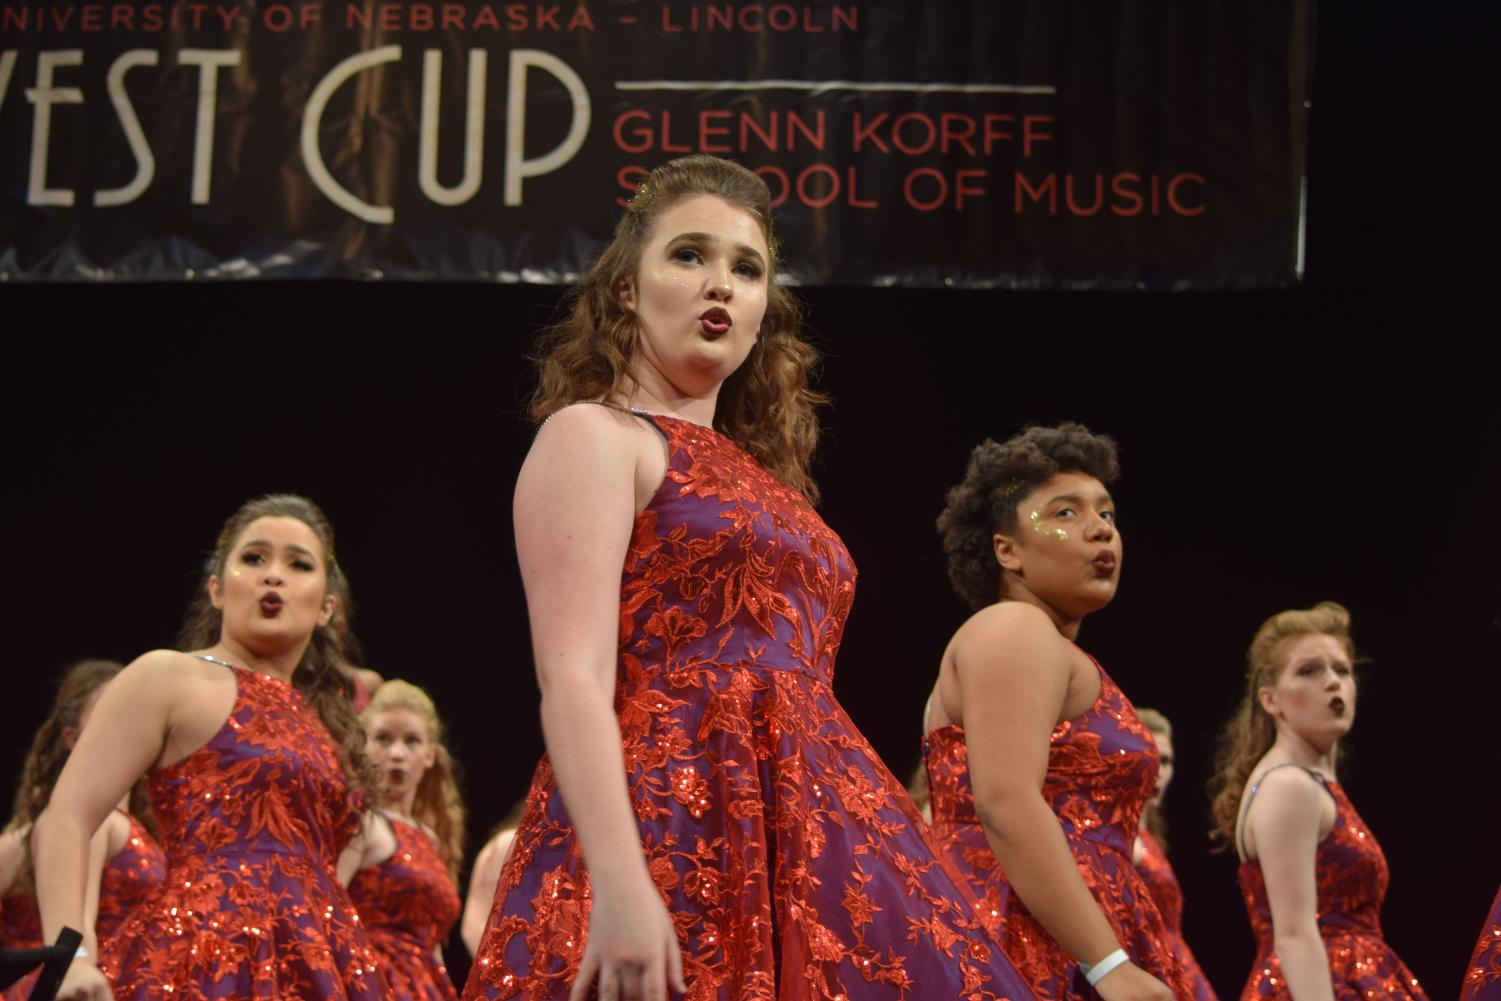 Mikayla Galgerud performs with Free Spirit at the UNL Midwest Cup on January 12th.